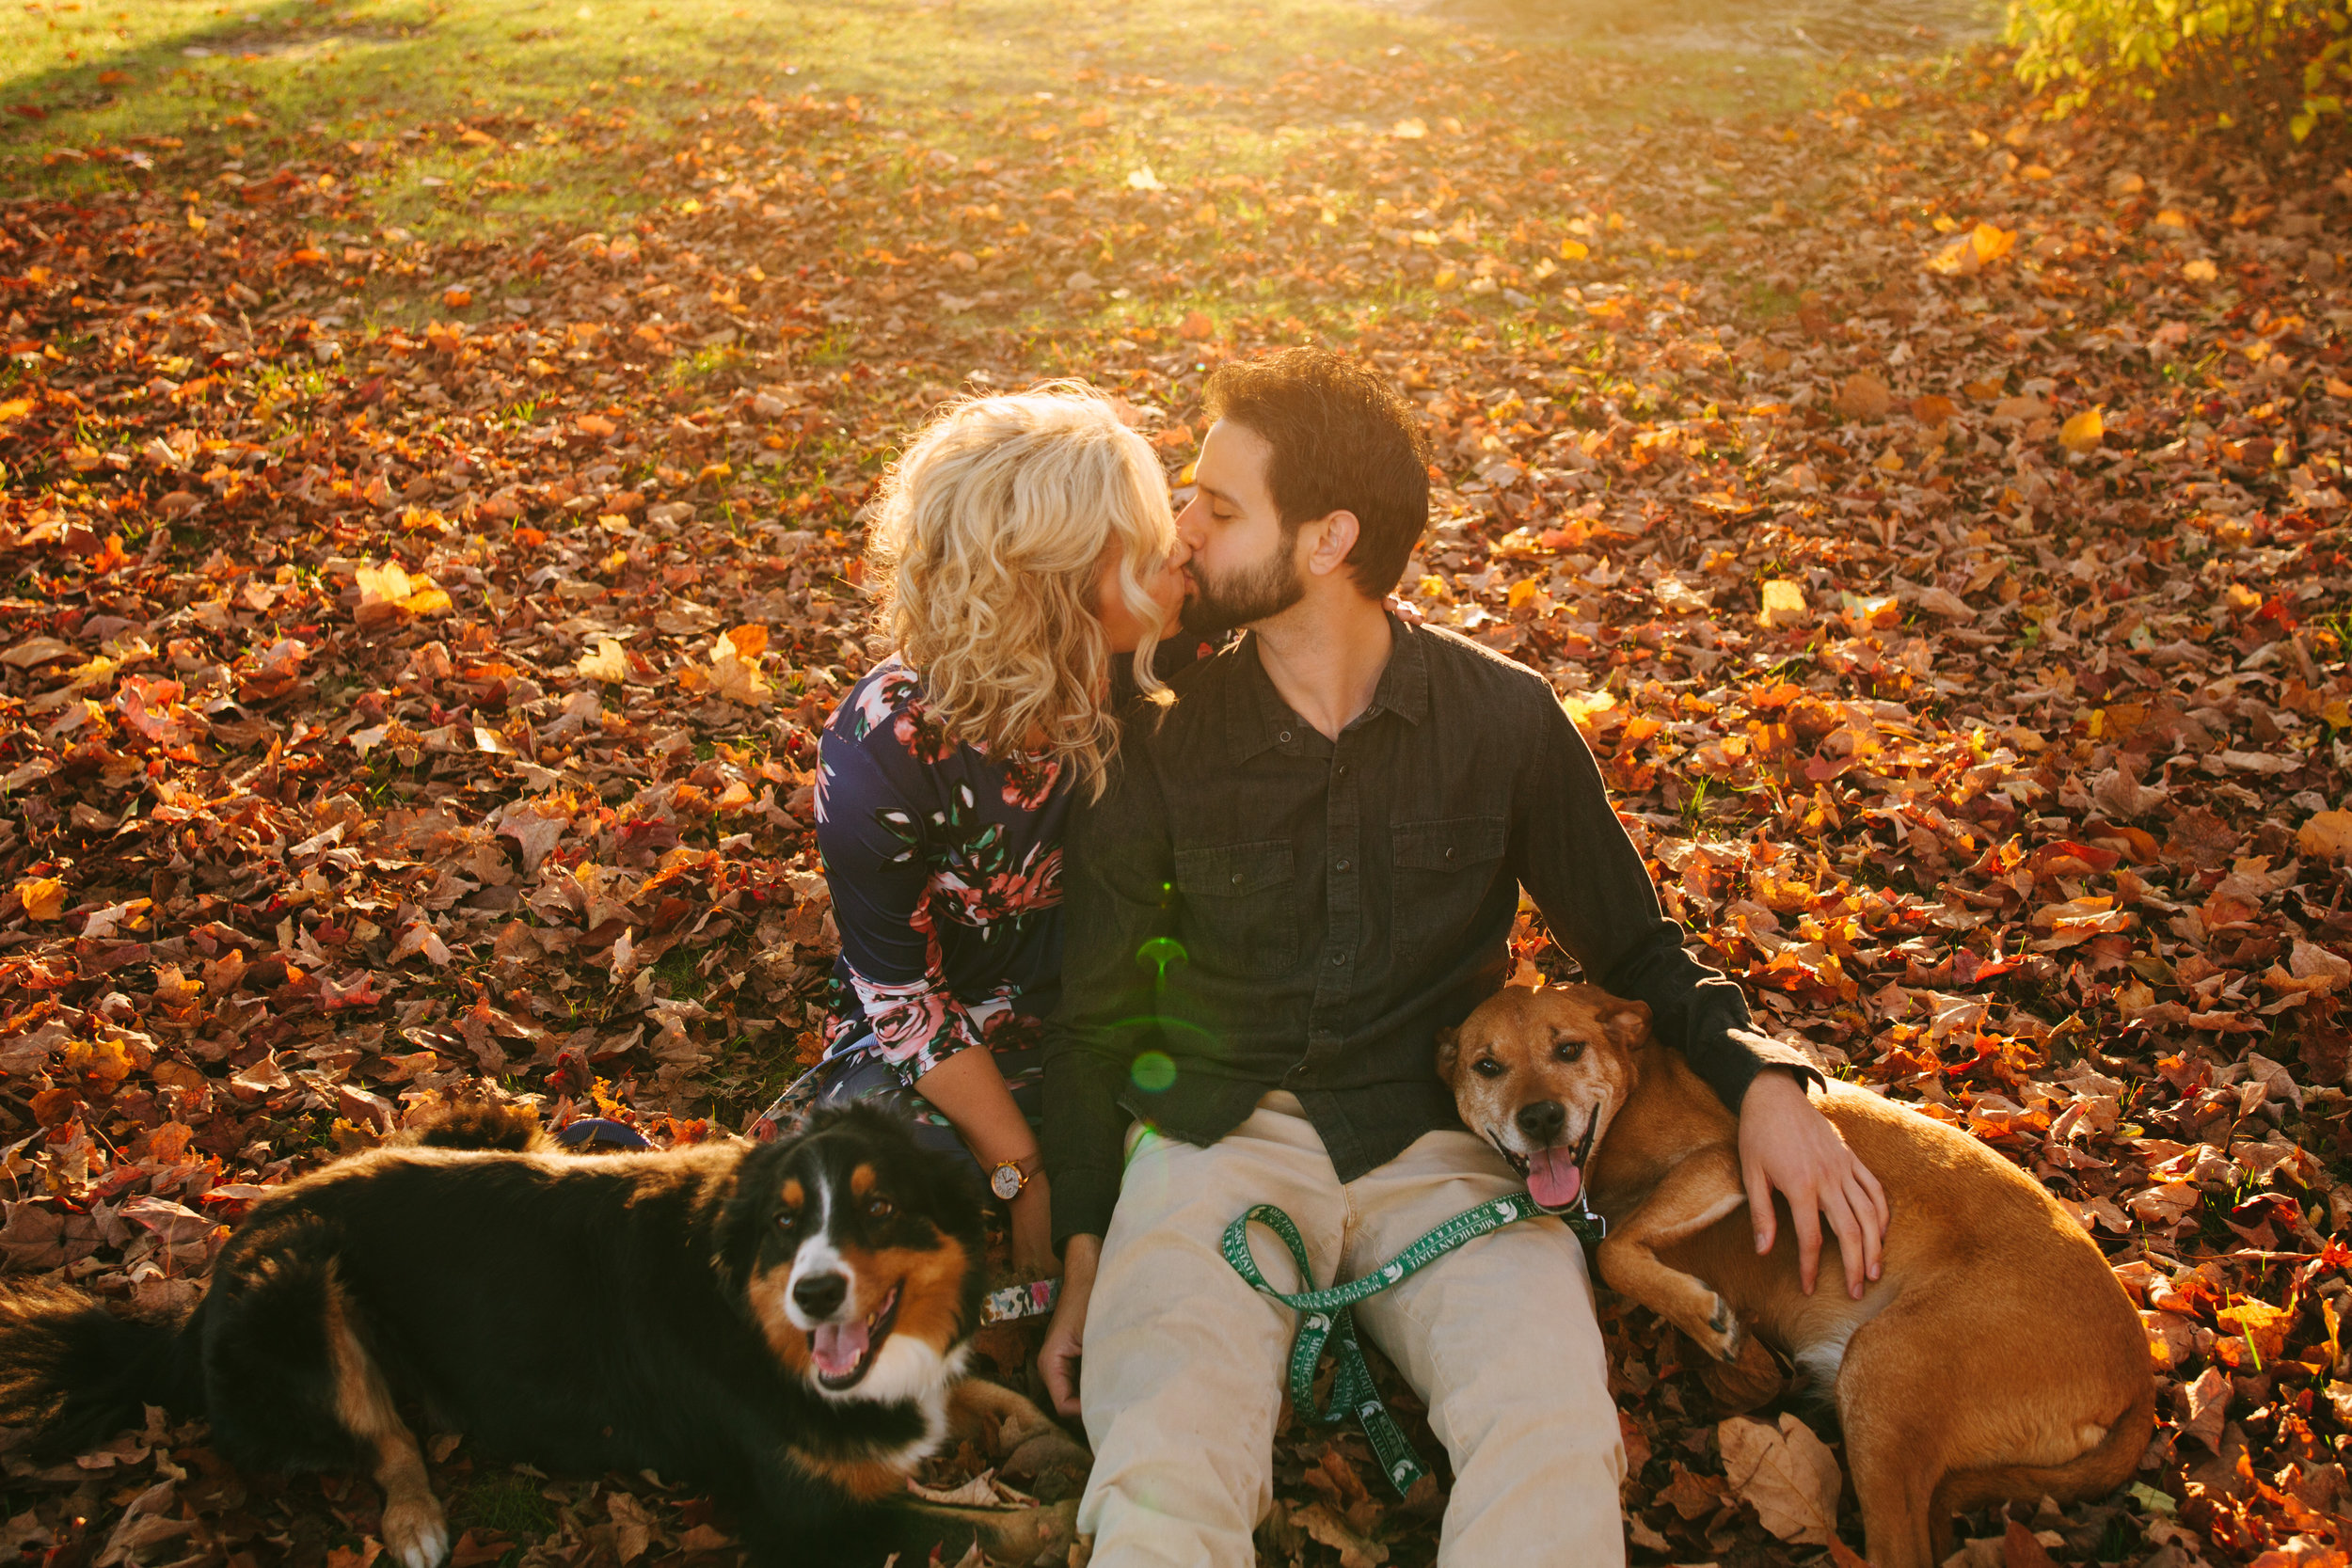 charltonpark_engagementsession_grandrapidsphotographer_grandrapids_hastings_michiganwedding_fallengagement_fallwedding_jdarlingphoto_jessicadarling_westmichiganphotographer_wedding_fall_rusticwedding  024.jpg